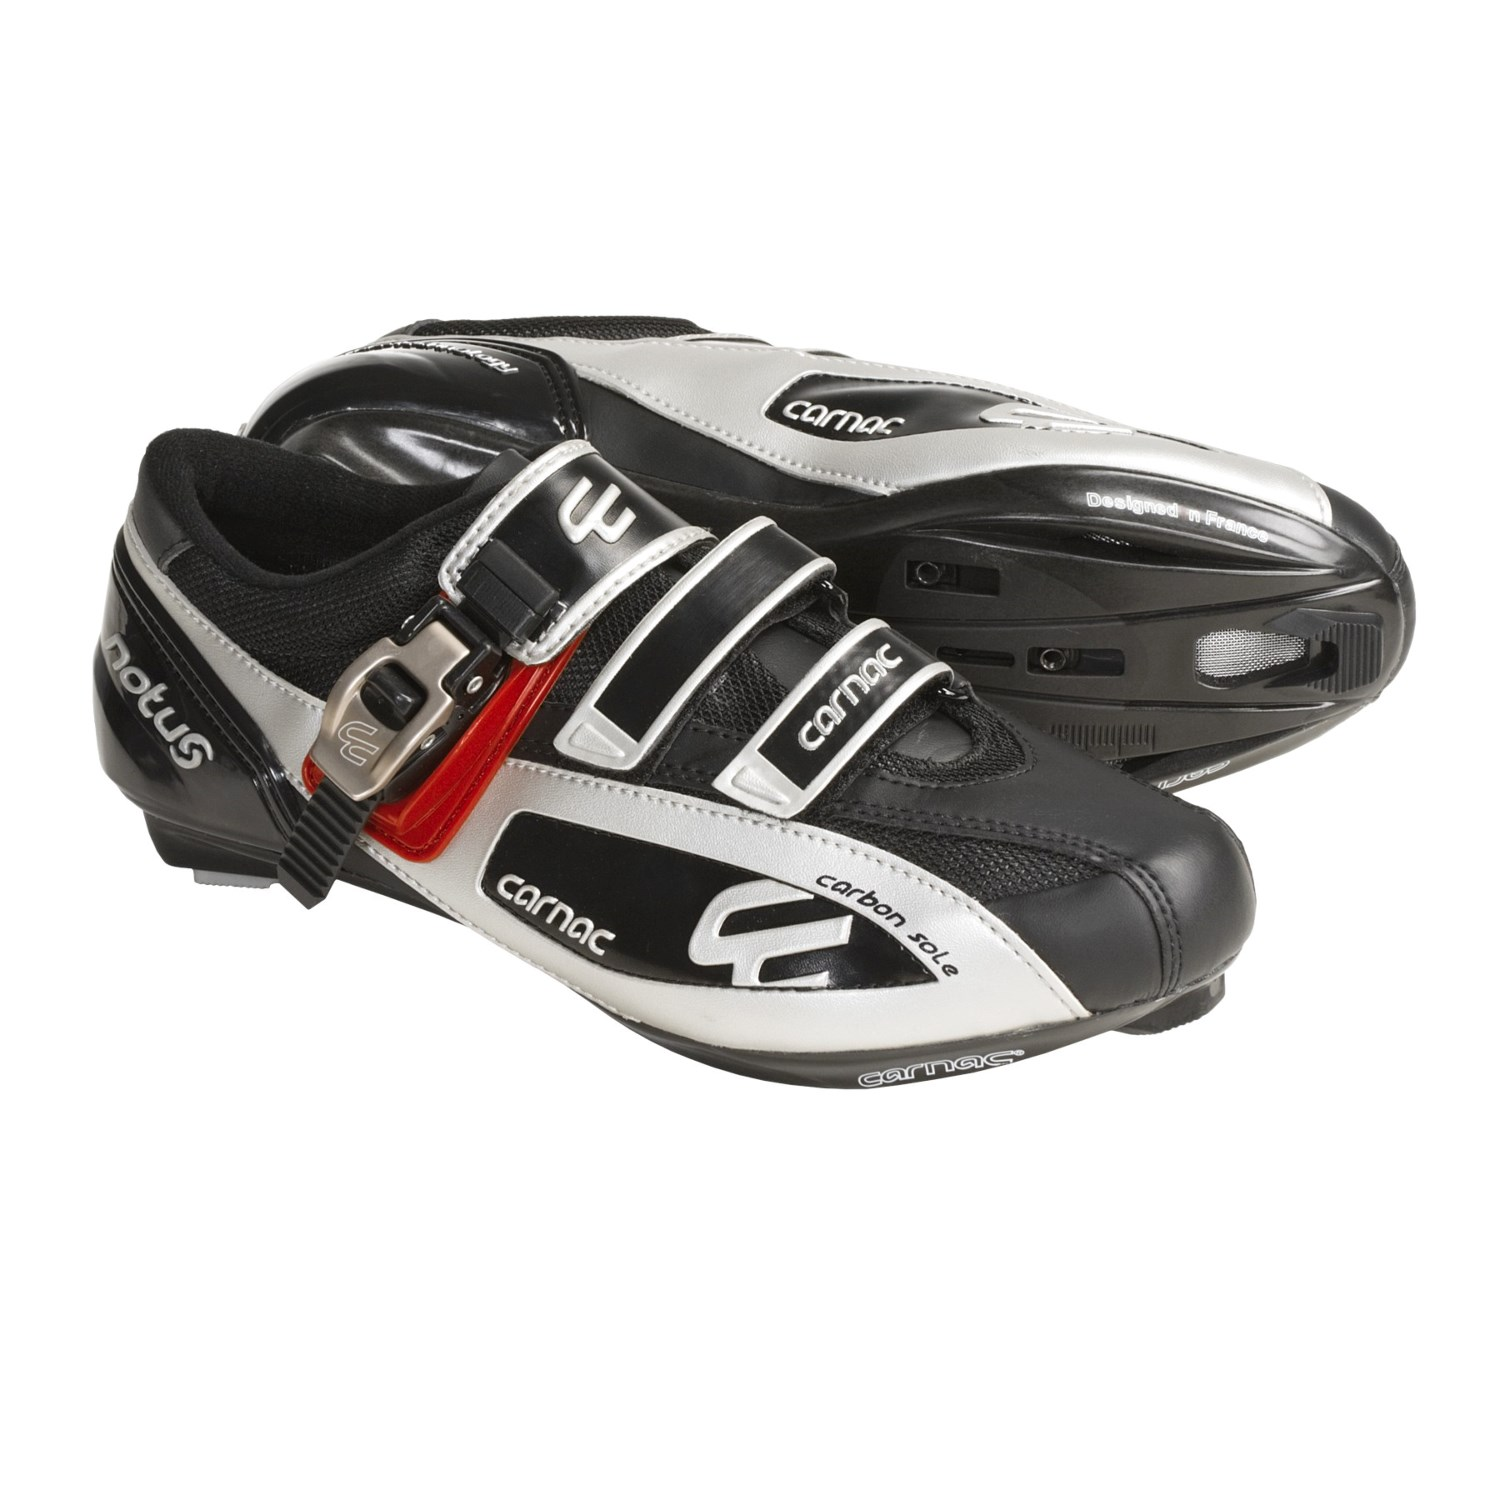 Carnac Cycling Shoes Review